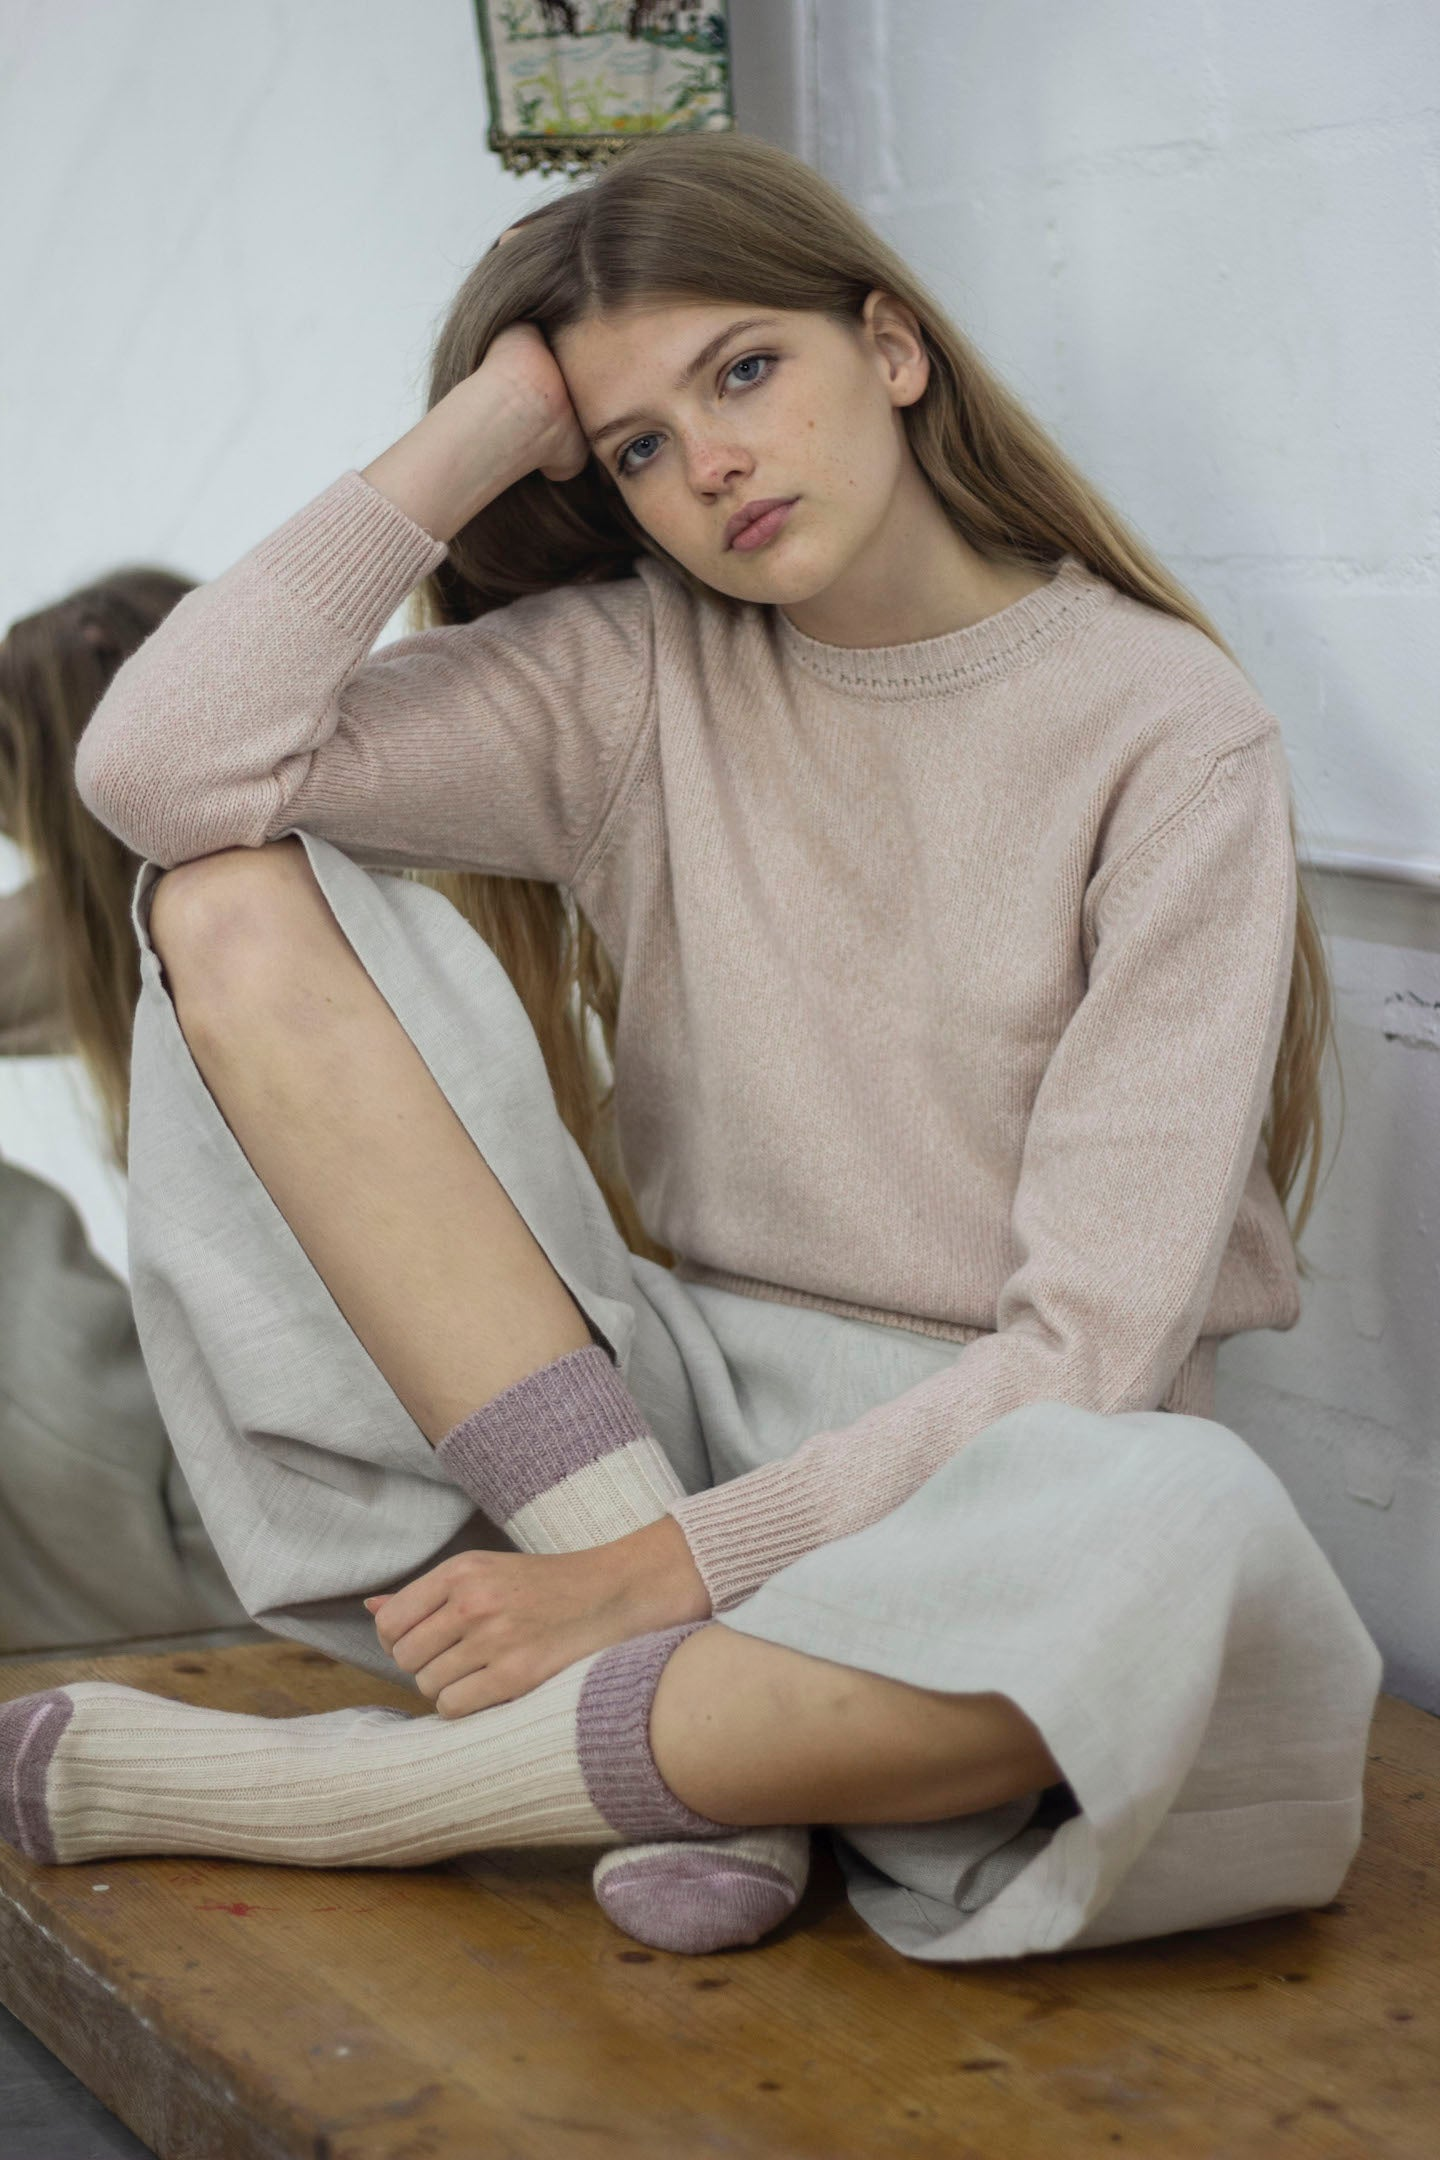 Sandy Pink Recycled Cashmere Sweater - crew neck, pink with camel